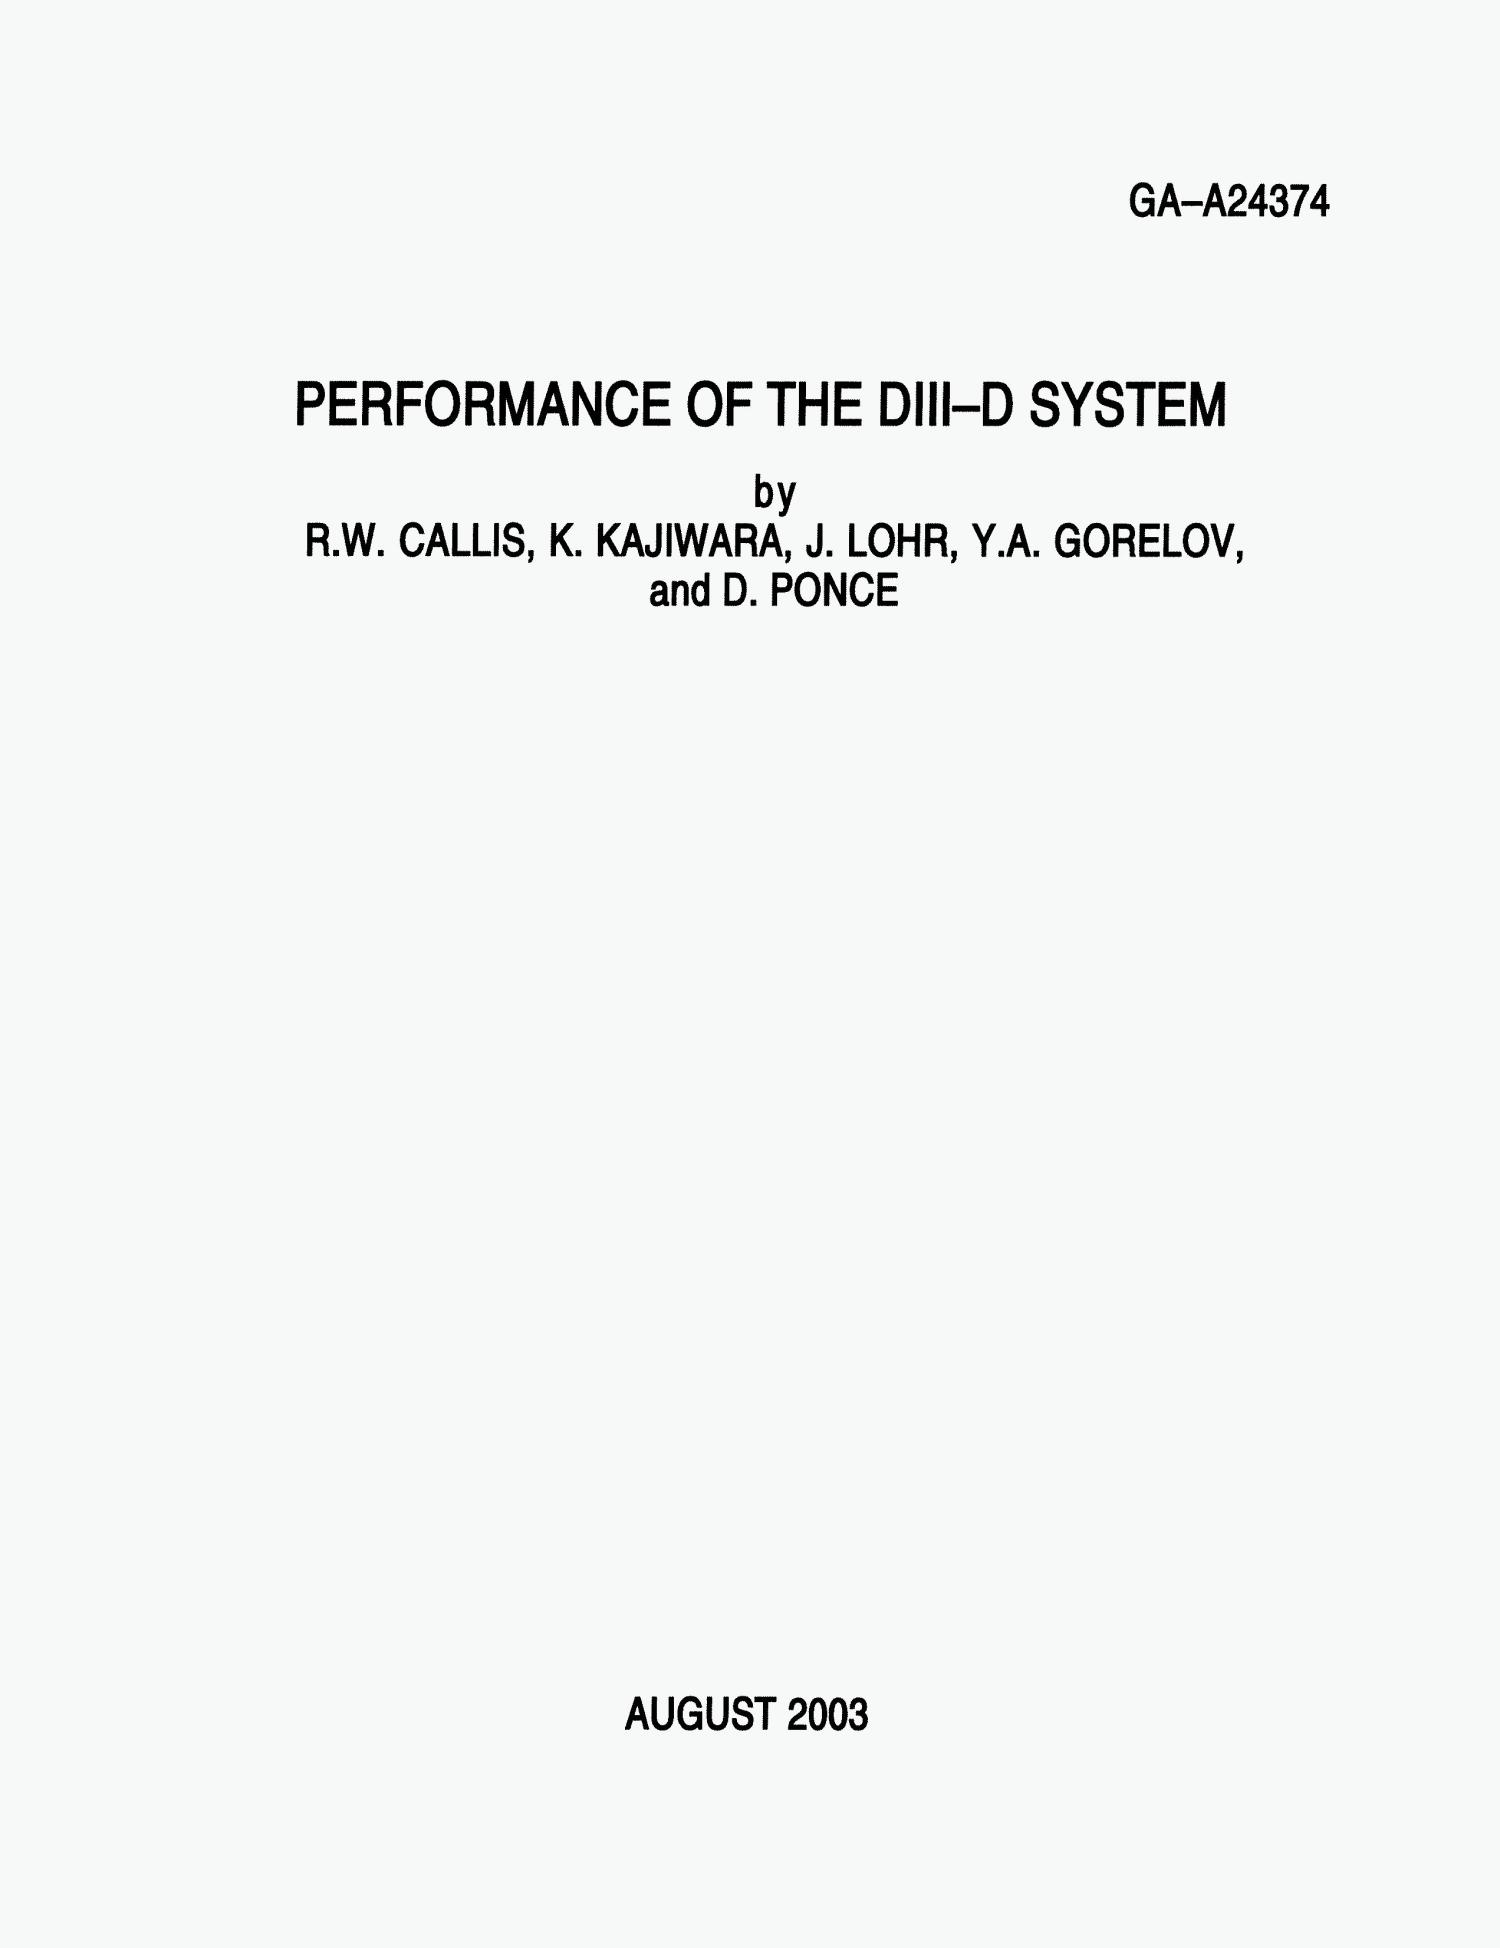 PERFORMANCE OF THE DIII-D SYSTEM                                                                                                      [Sequence #]: 1 of 8